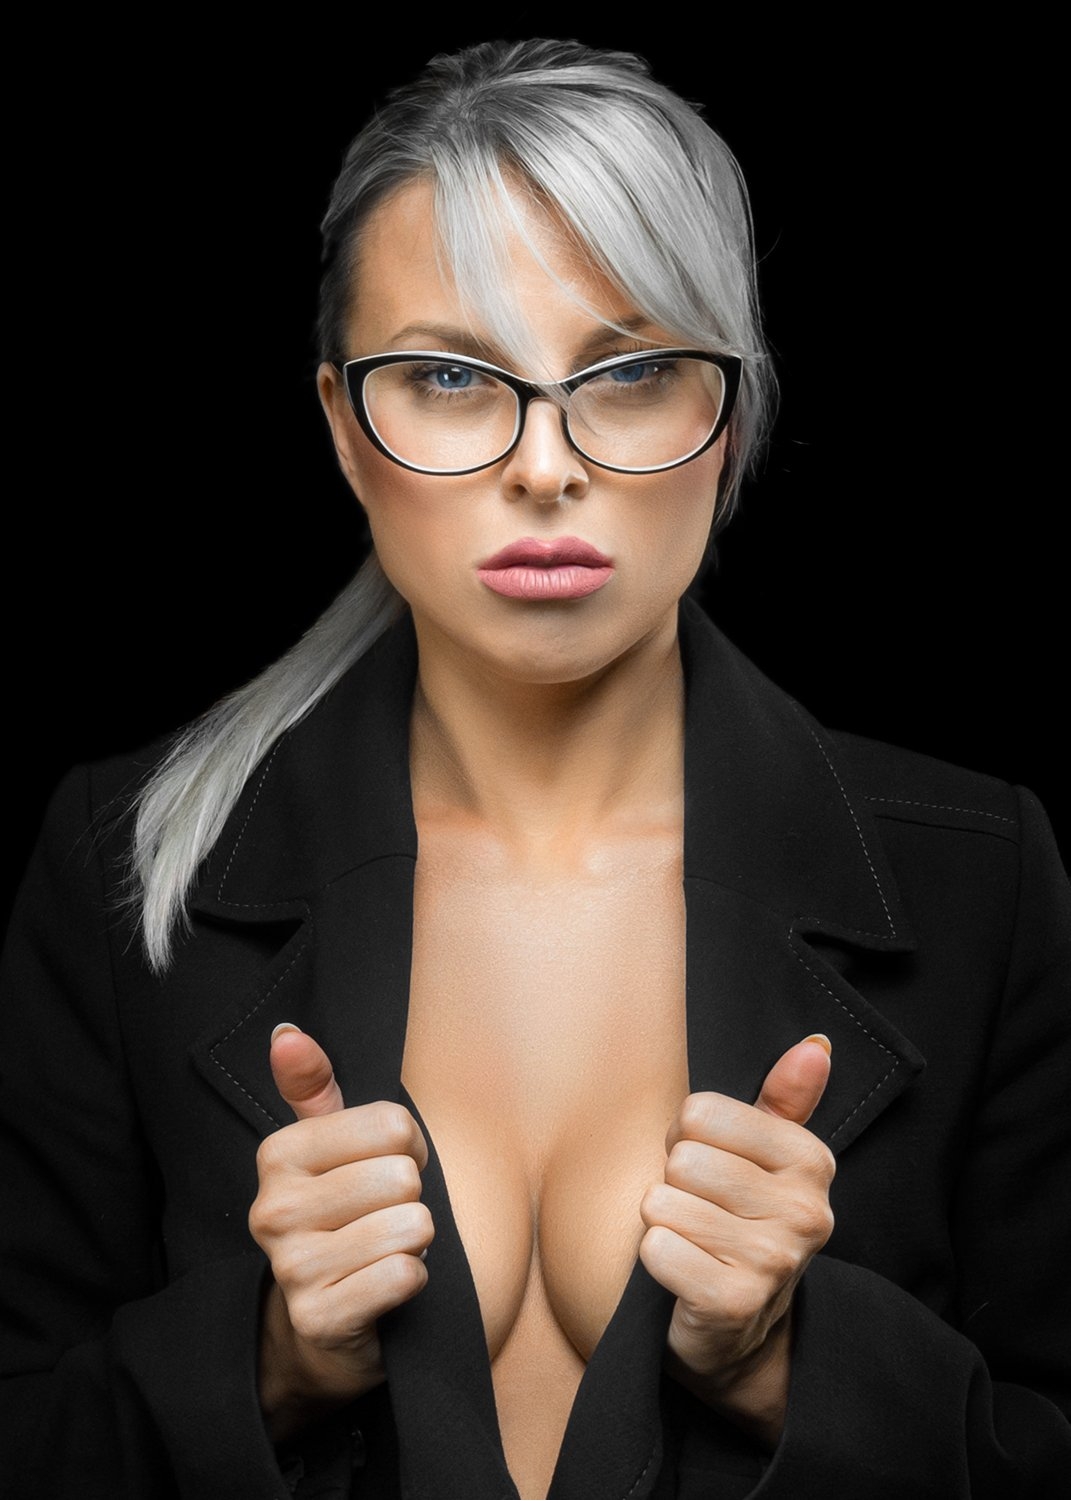 woman, eyeglasses, sexy, dark, blonde, Dmitry Belyaev